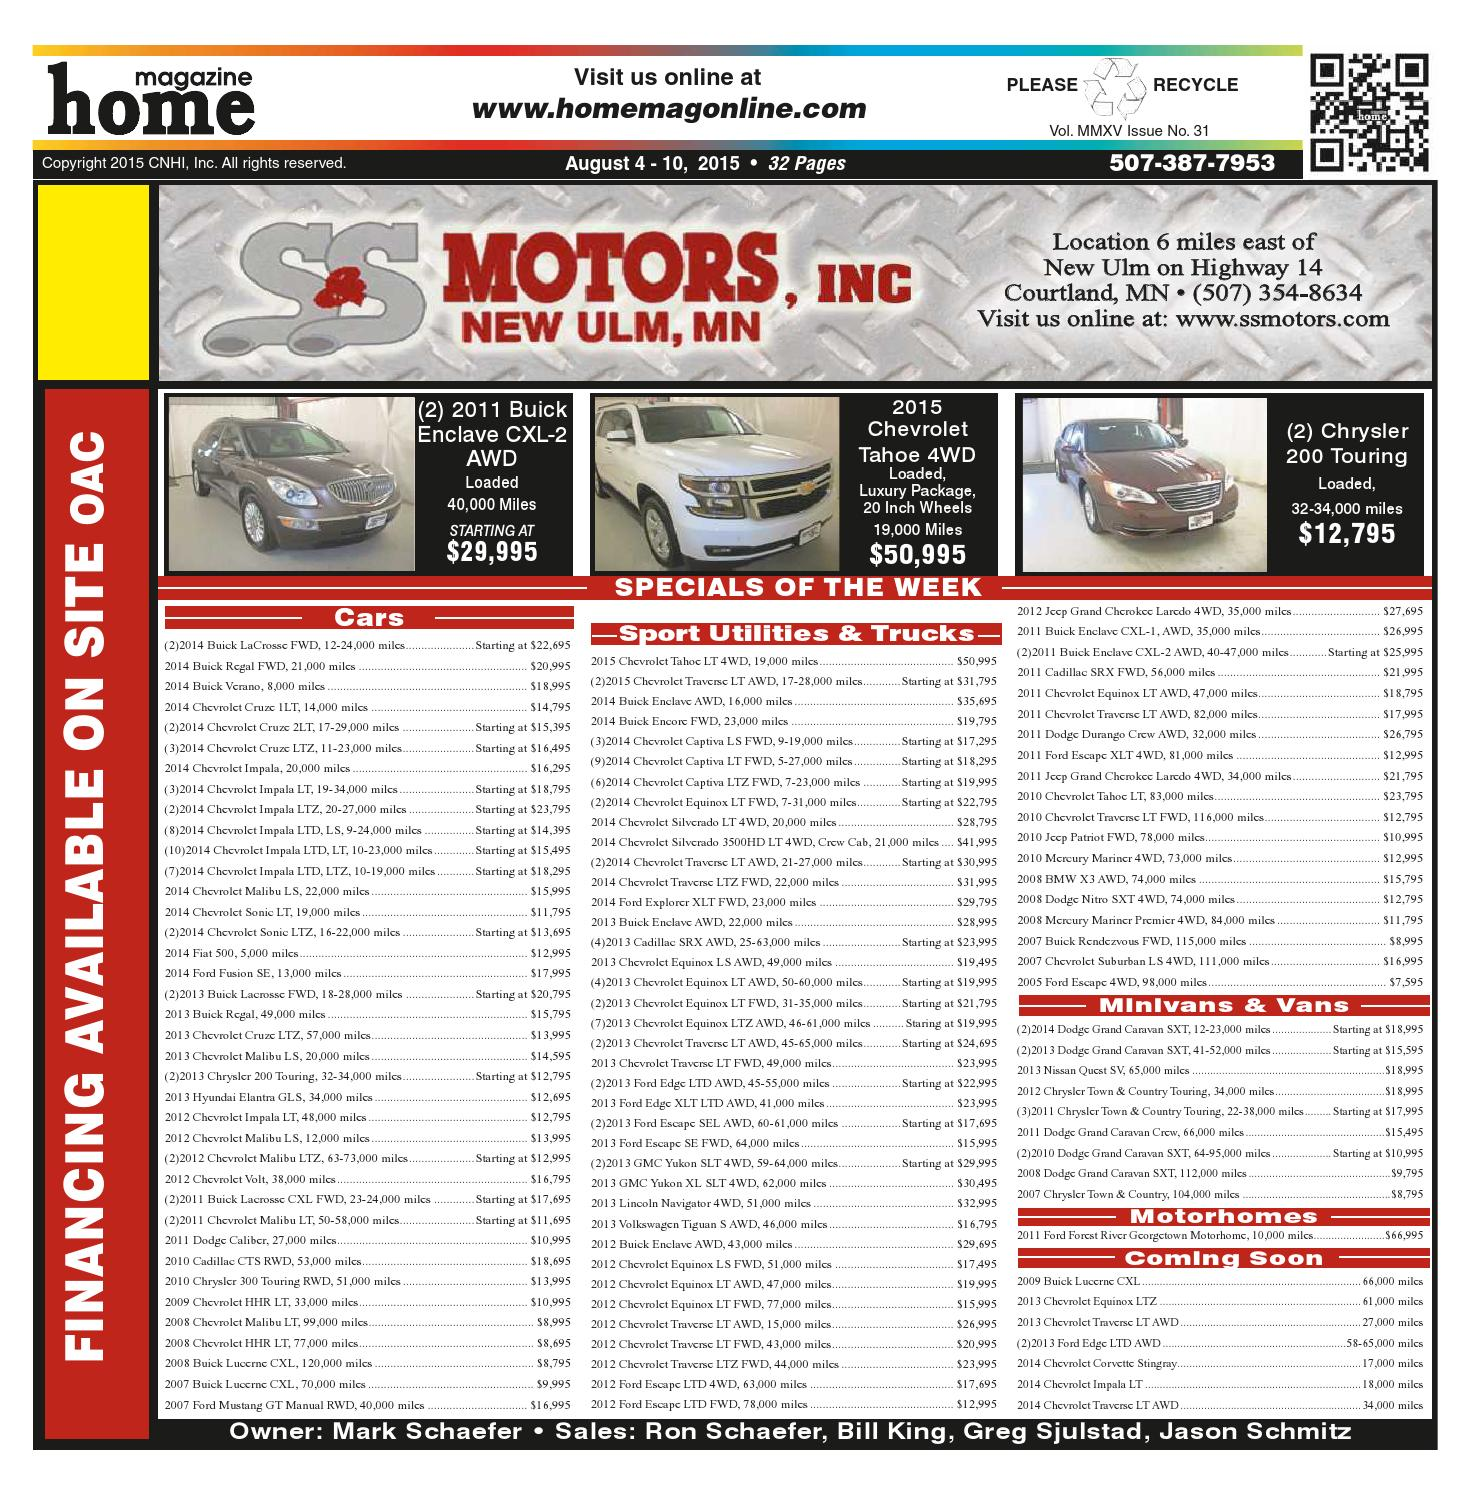 Home Magazine Issue 08/04/15 By Home Magazine Online